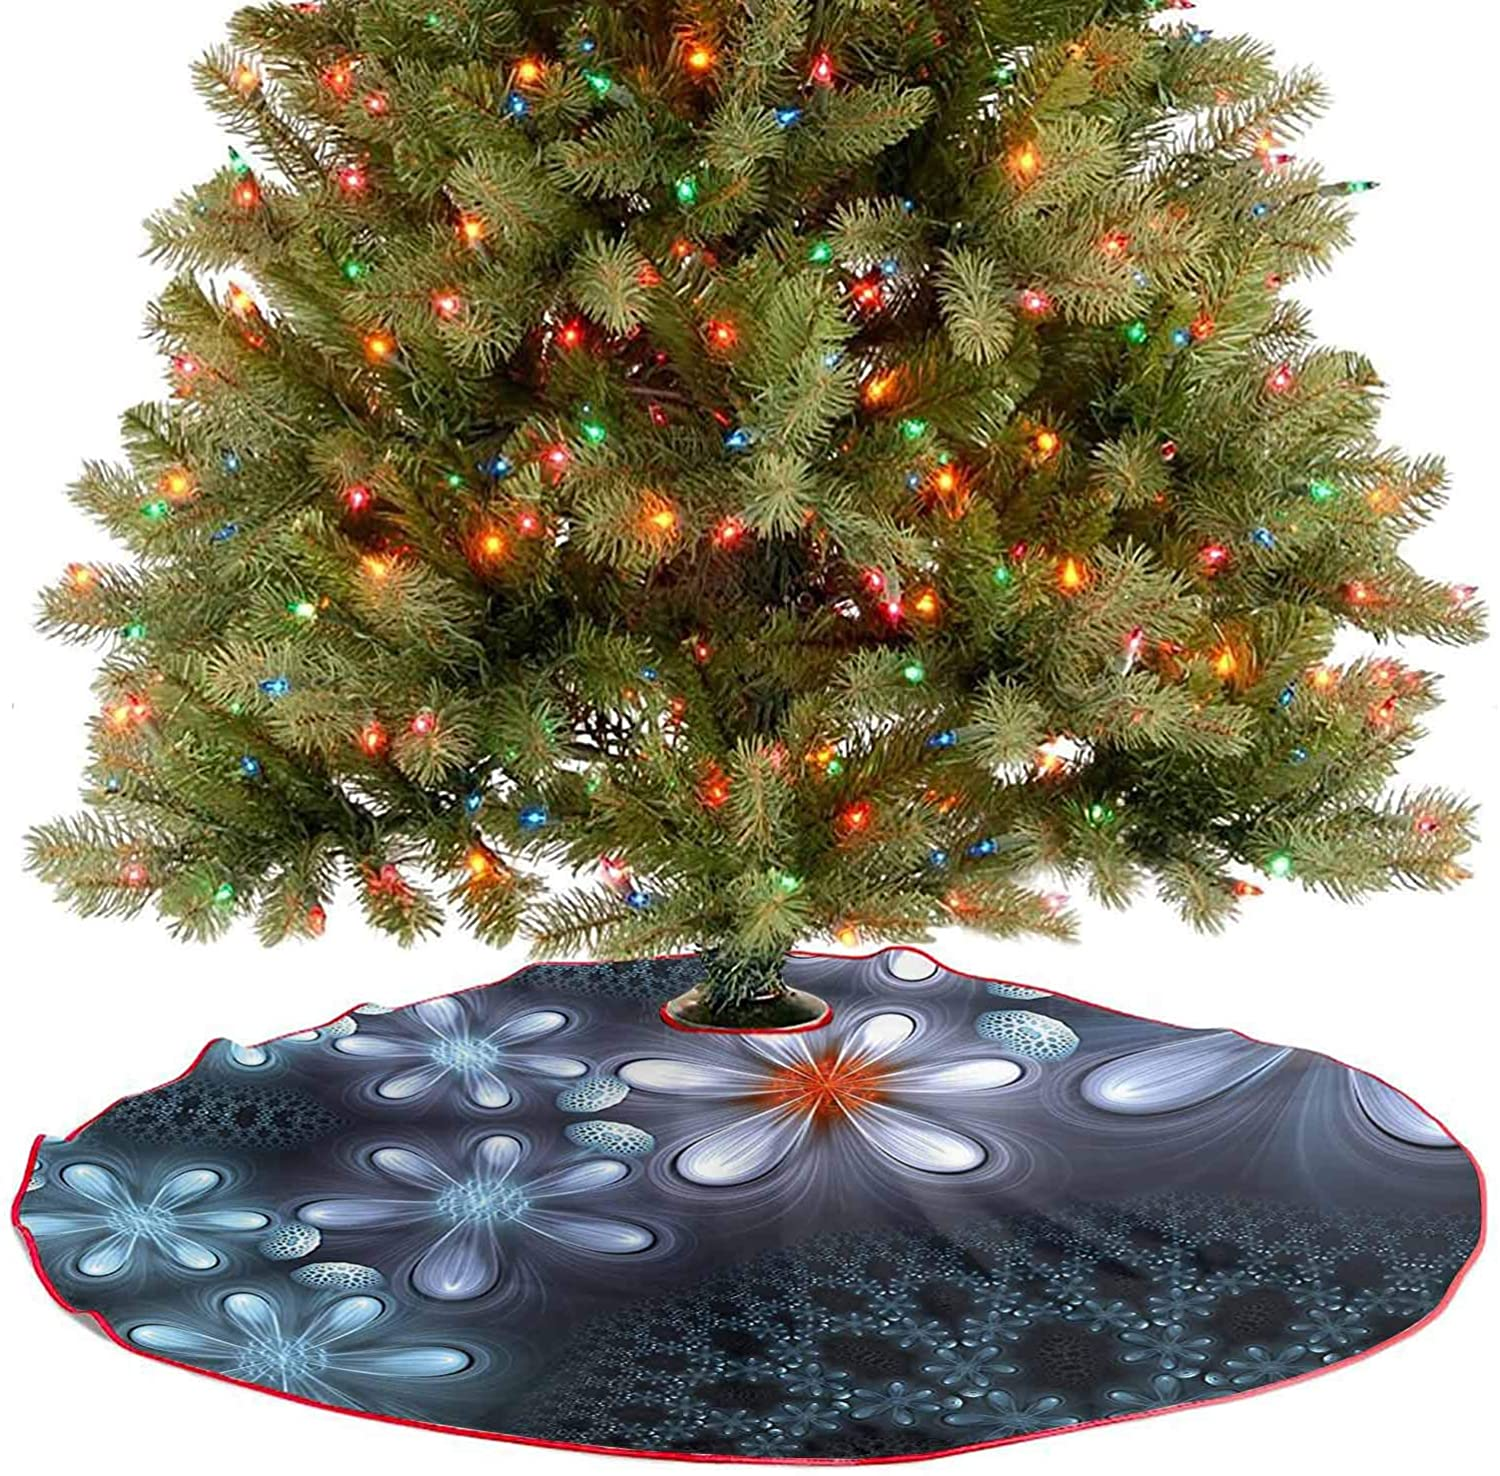 Adorise Xmas Tree Mat Vibrant Flower Pattern Graphic Art Featured Futuristic Petals with Free 3D Glasses Xmas Tree Holiday Decorations Goes Perfectly with Your Tree - 30 Inch